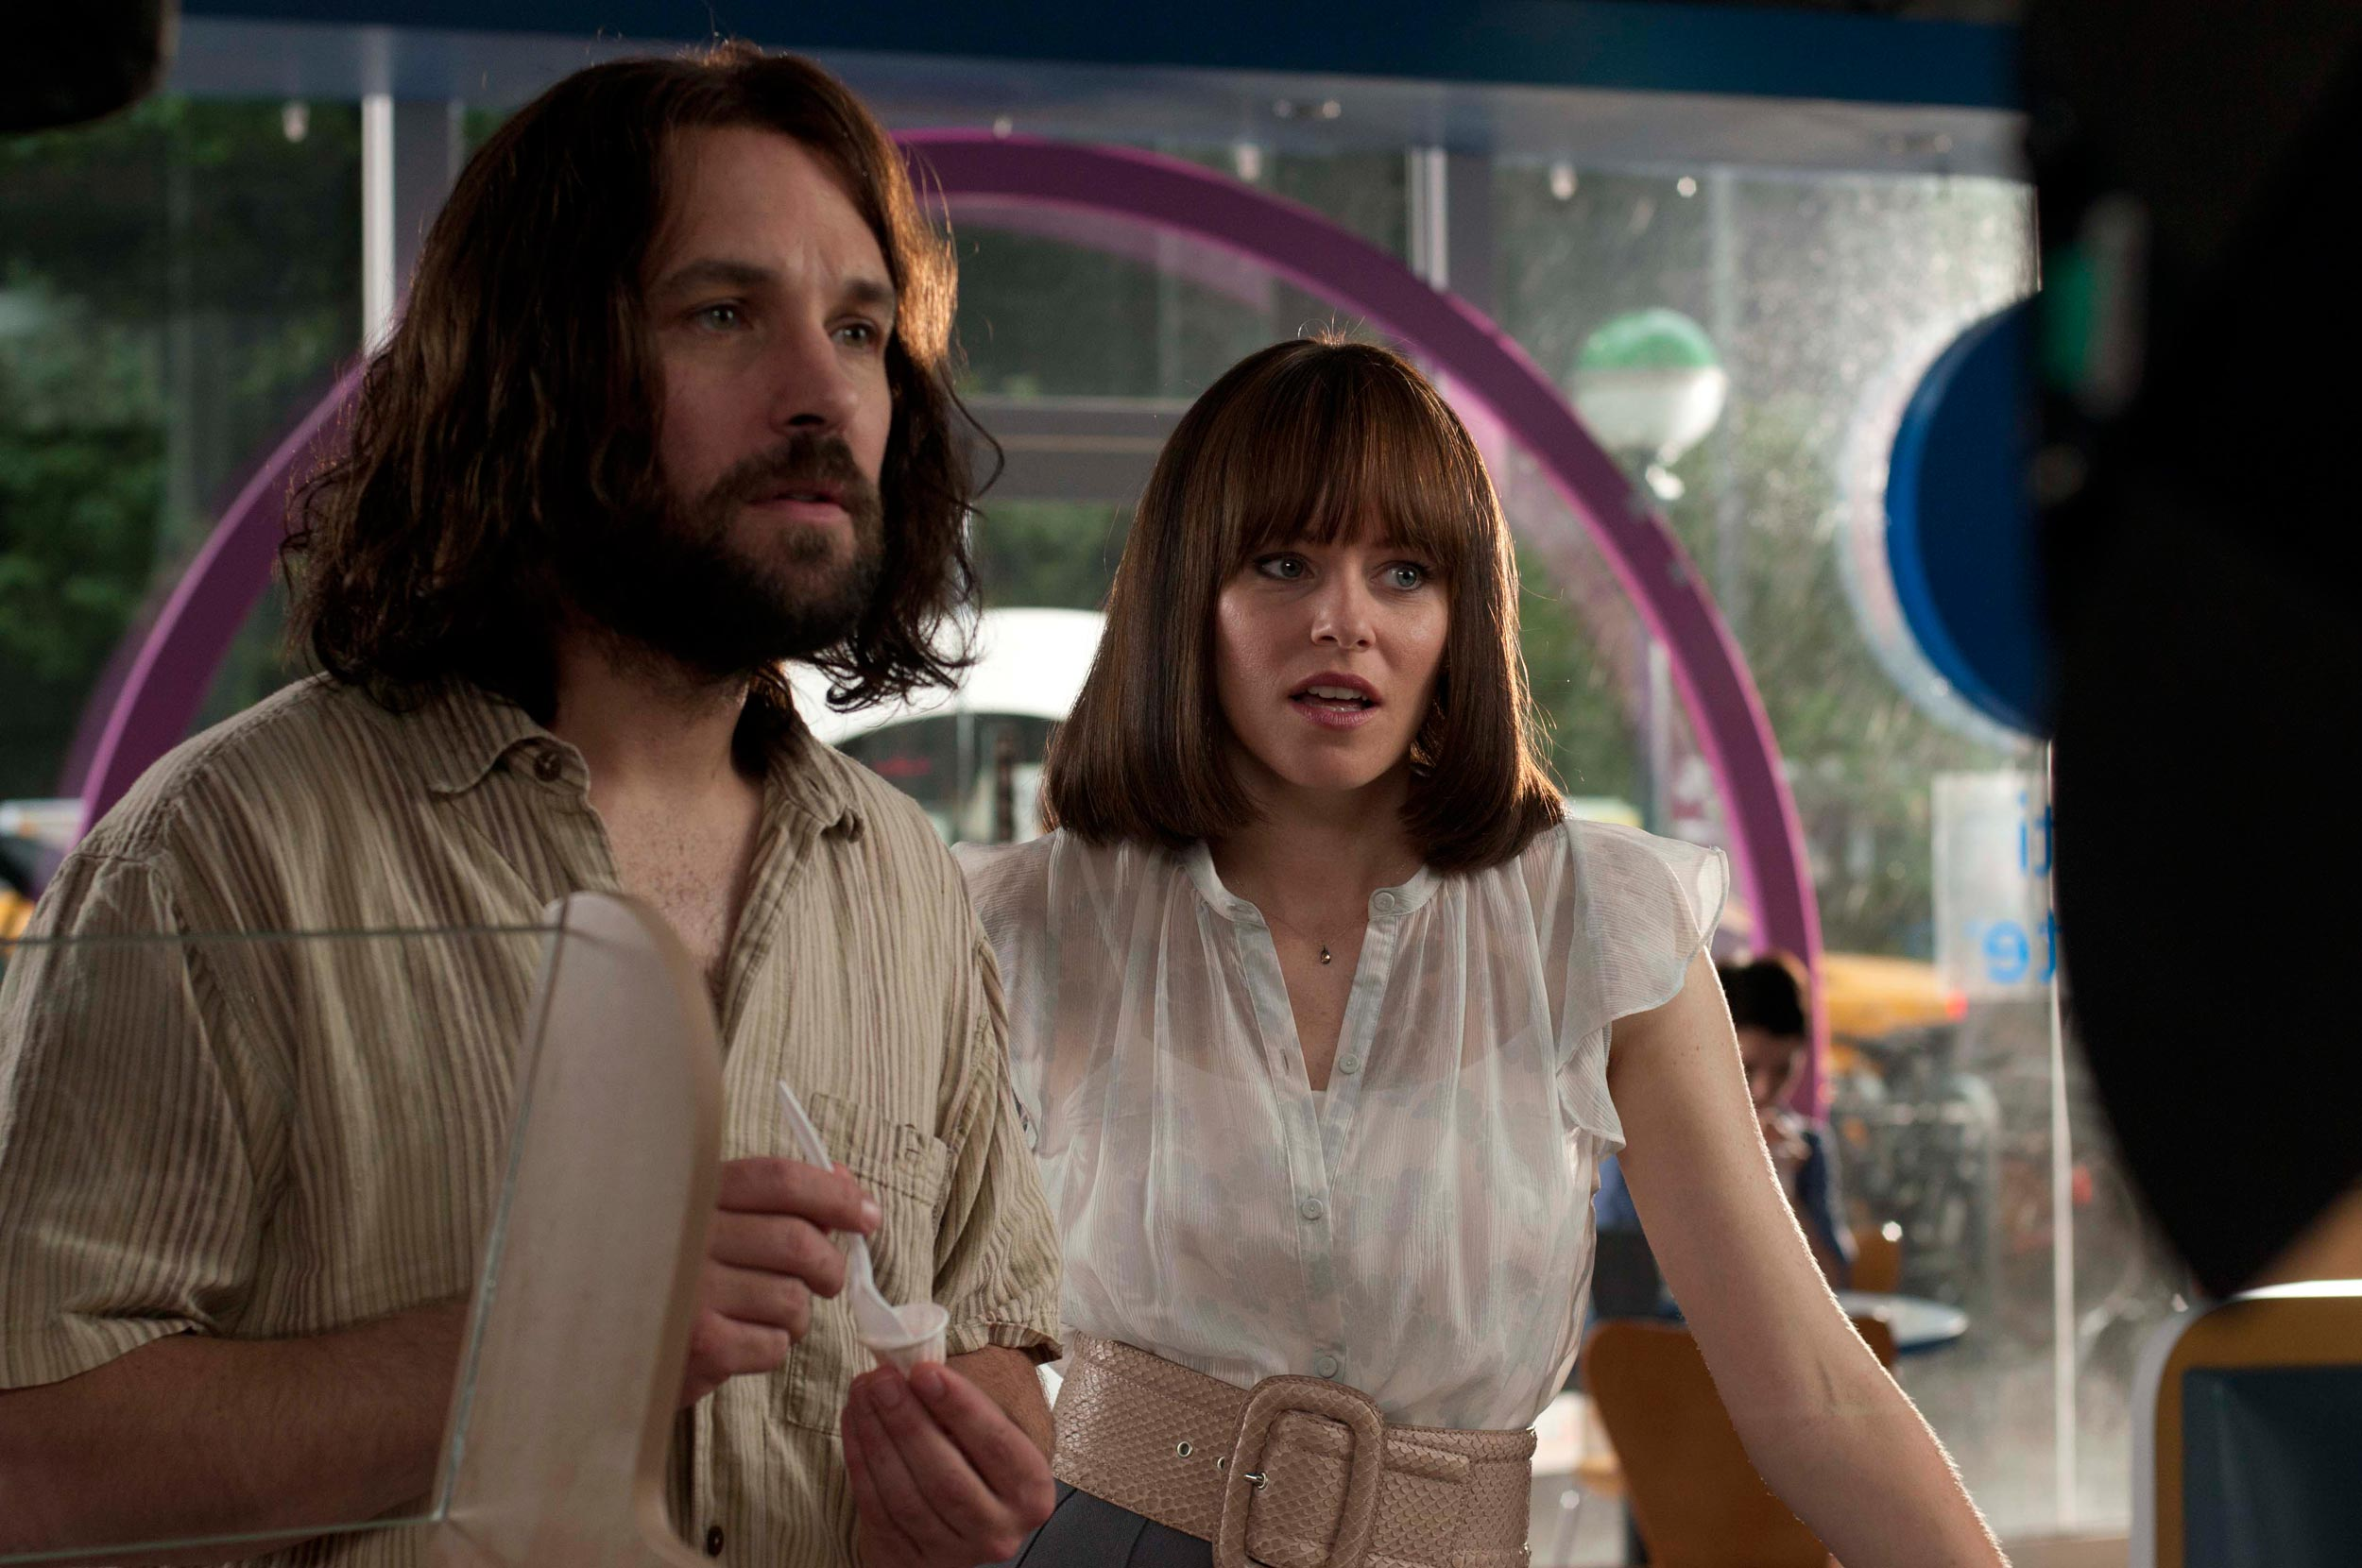 Elizabeth Banks and Paul Rudd in Our Idiot Brother